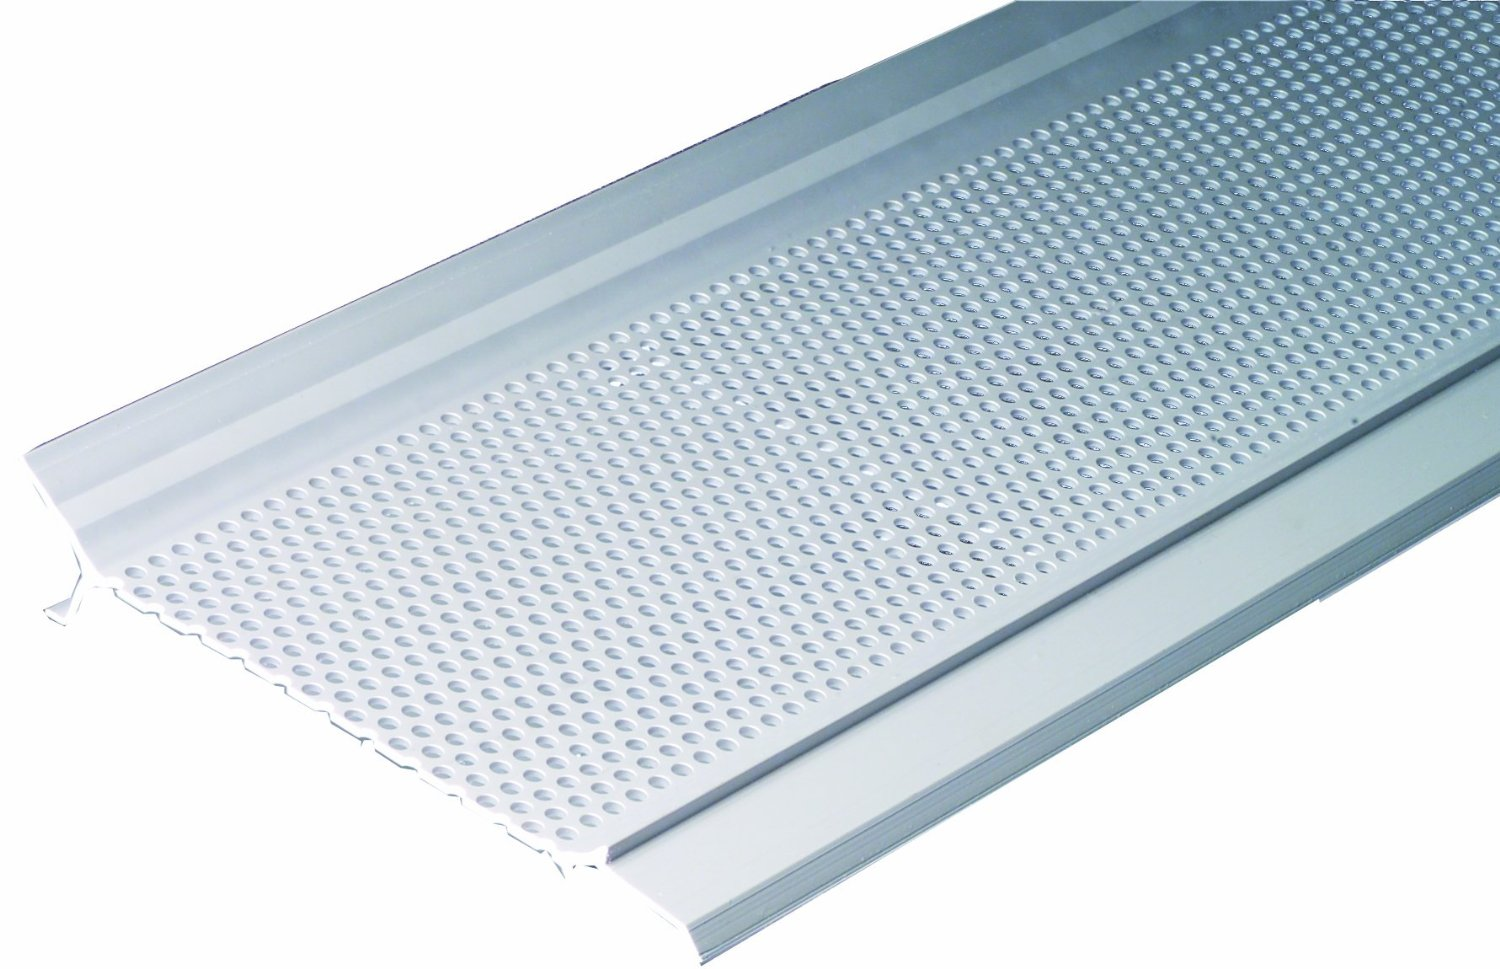 Gutter Guard Pro Gutter Guards Gutter Covers Best